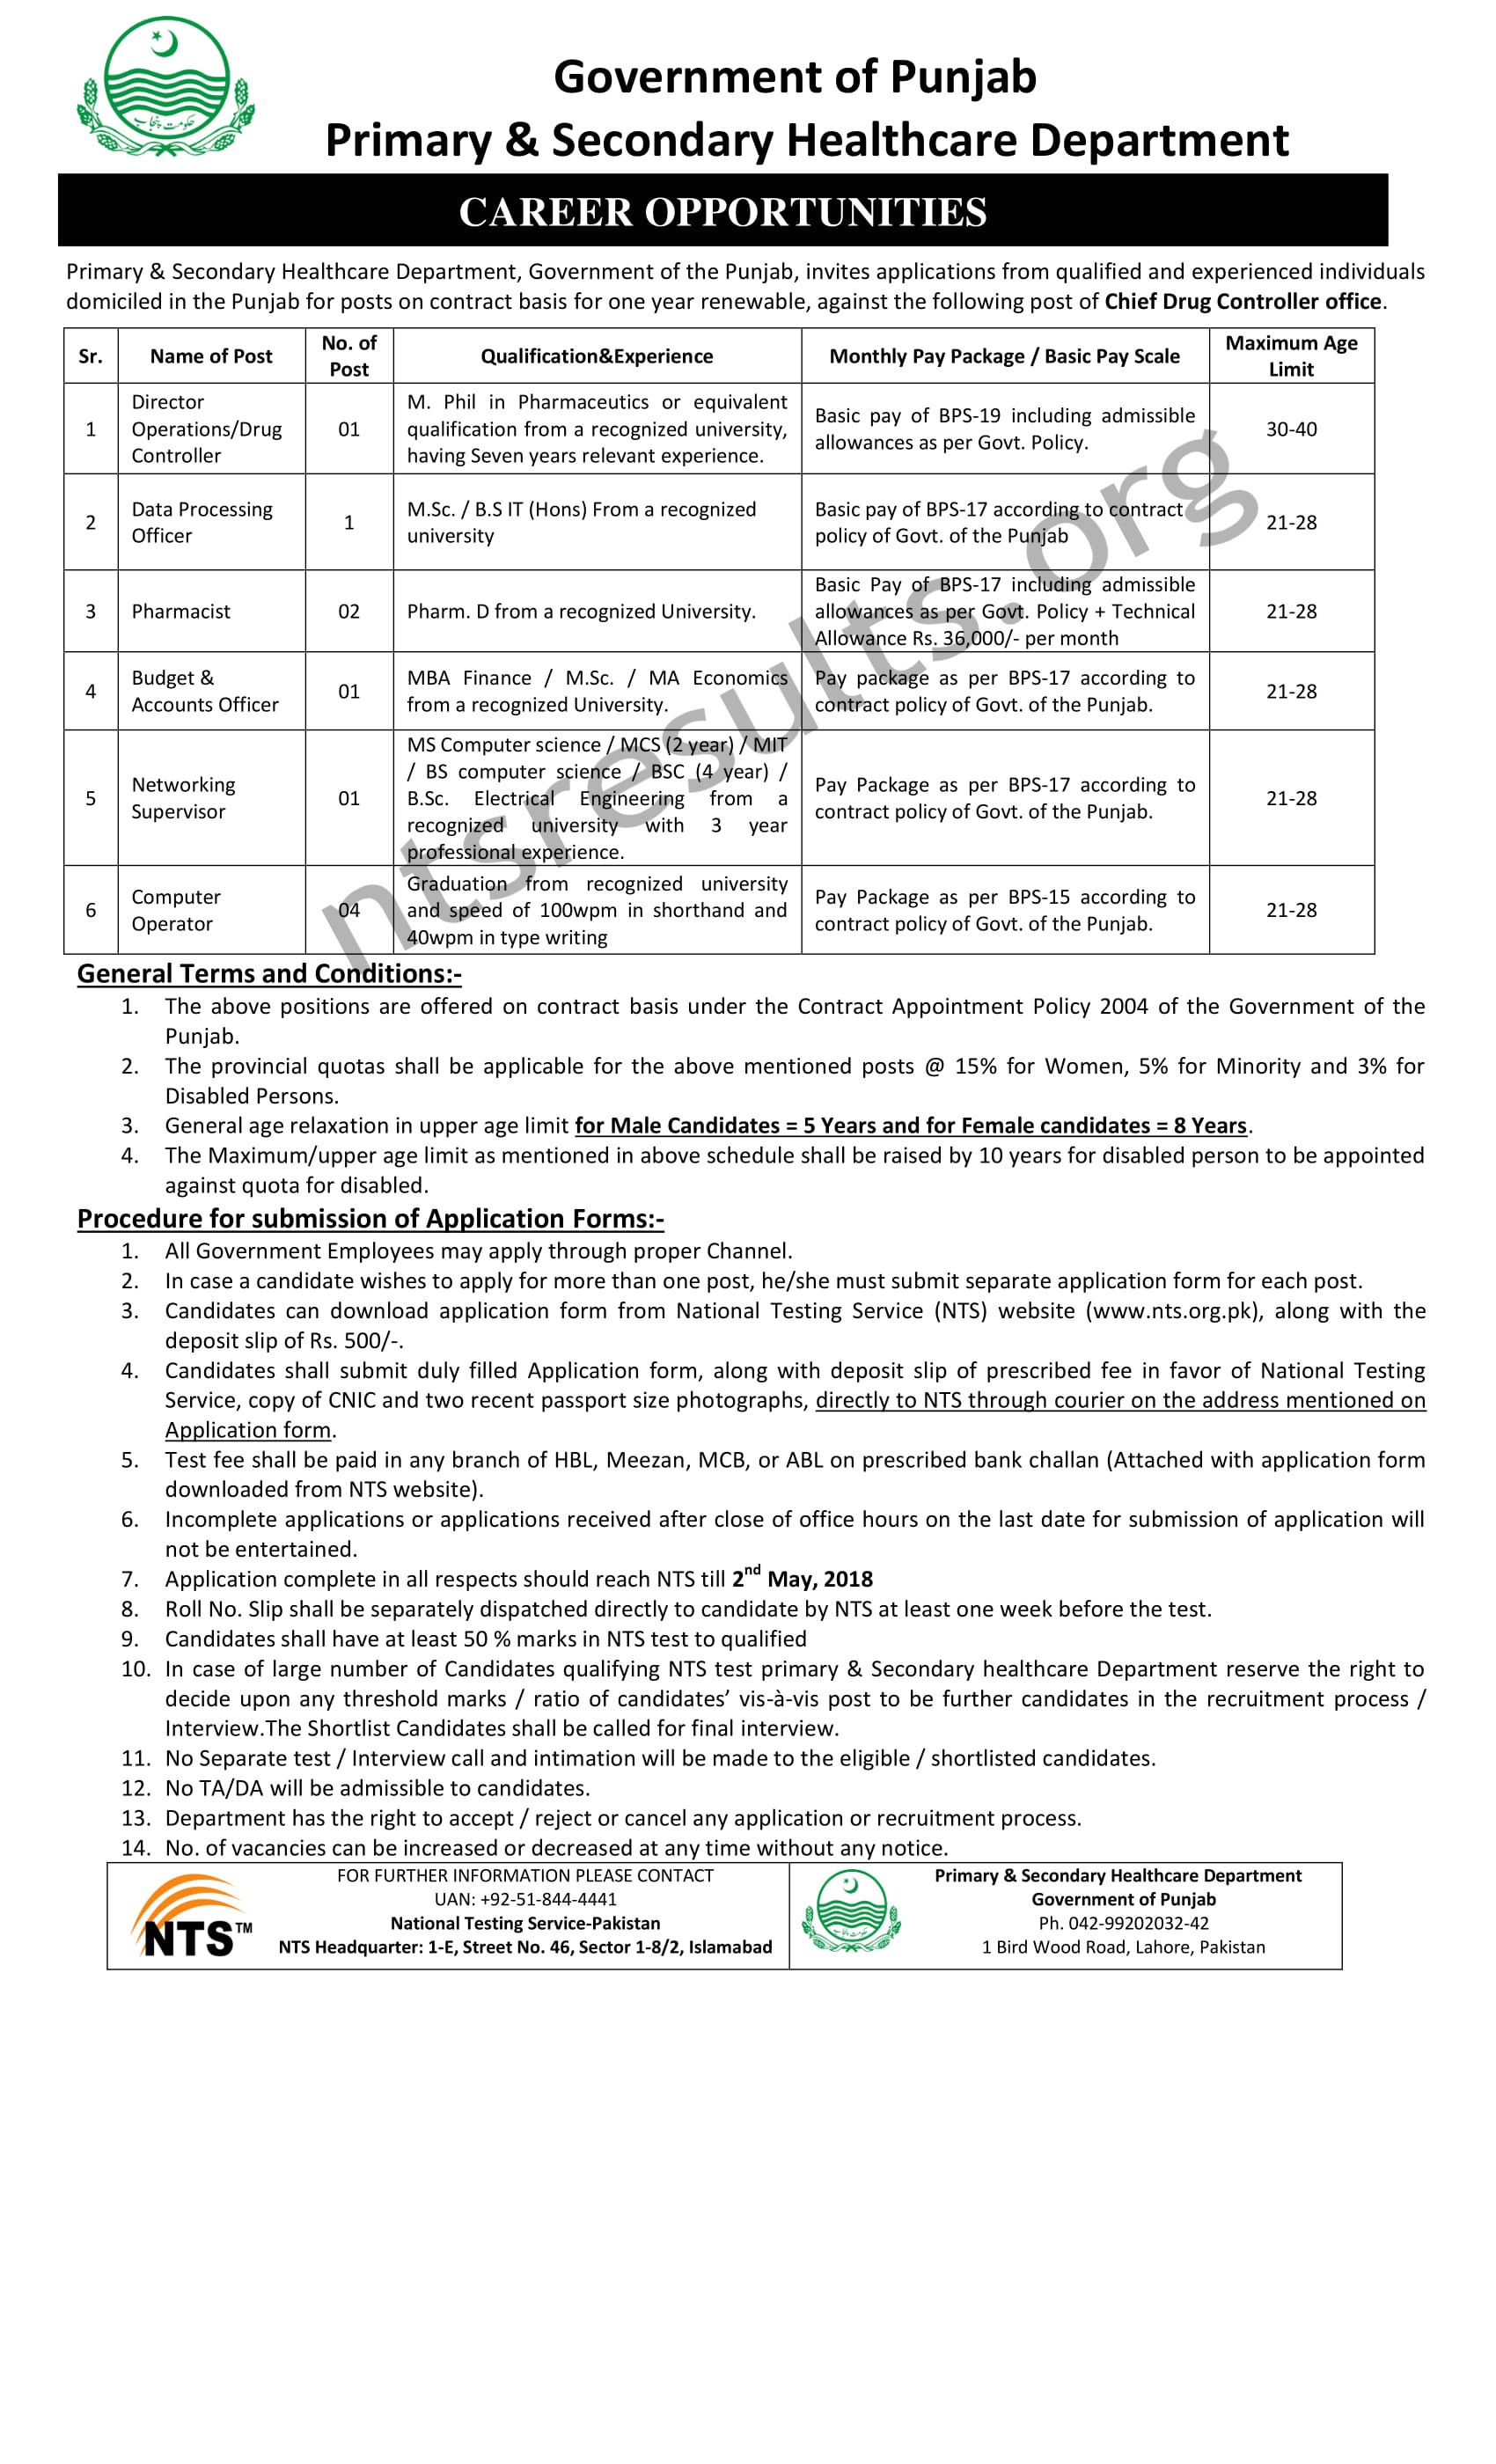 Primary Secondary Health Care Department Chief Drug Controller Office Jobs Via NTS